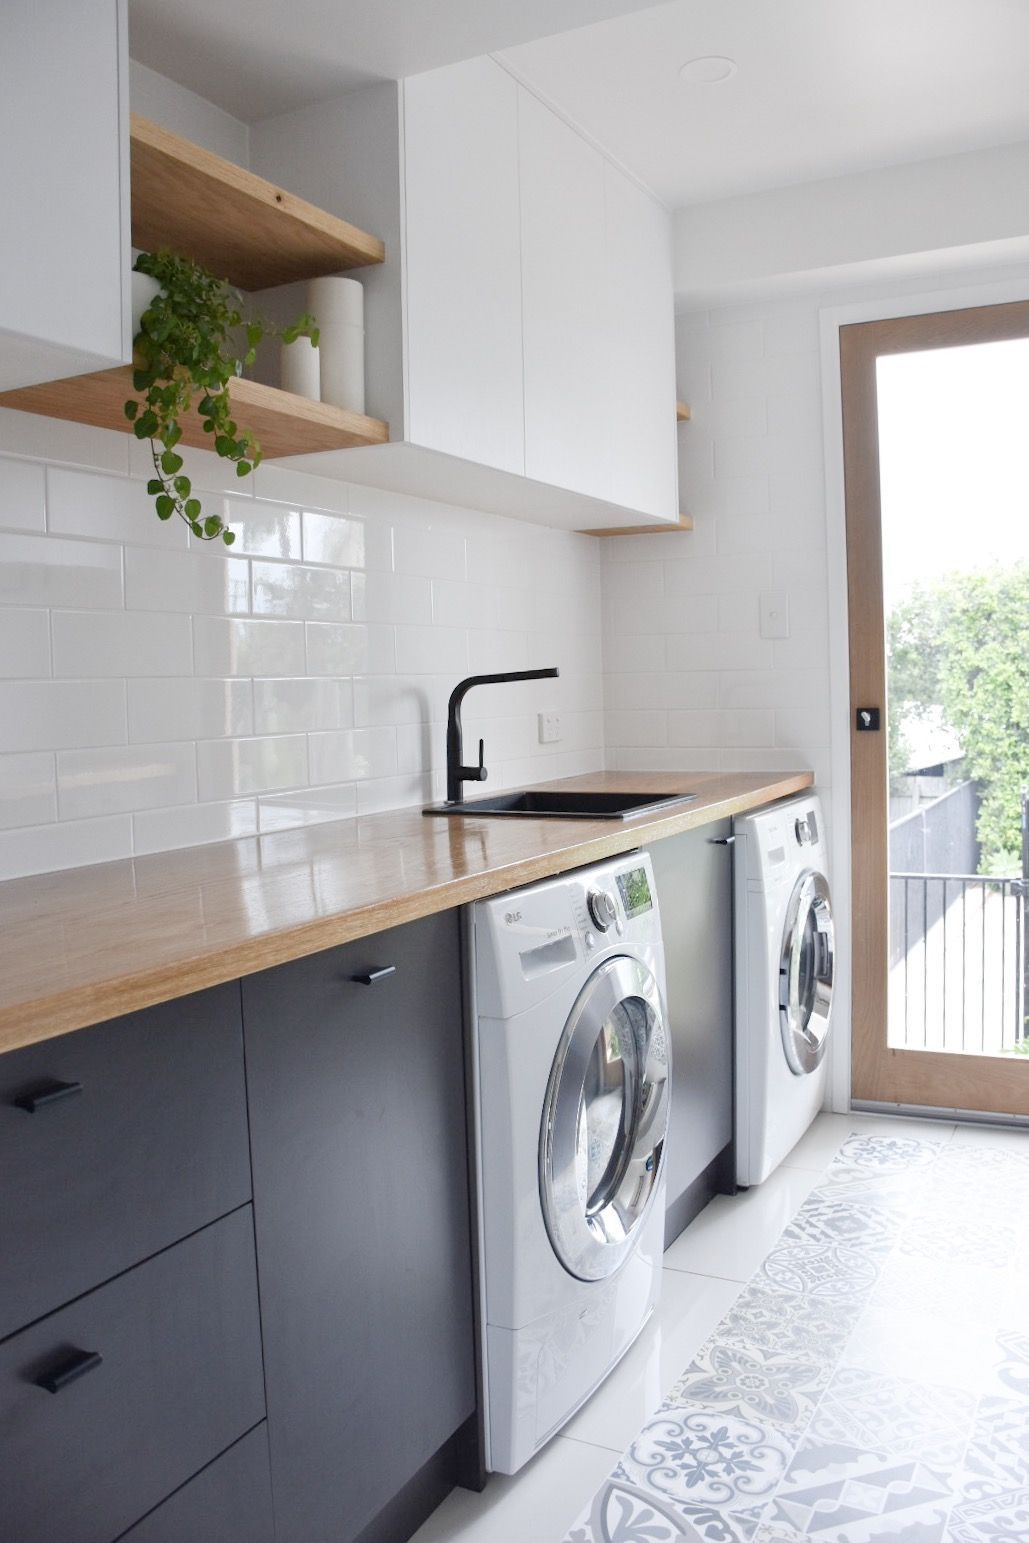 15 Clever Laundry Room Ideas That Are Practical And Space